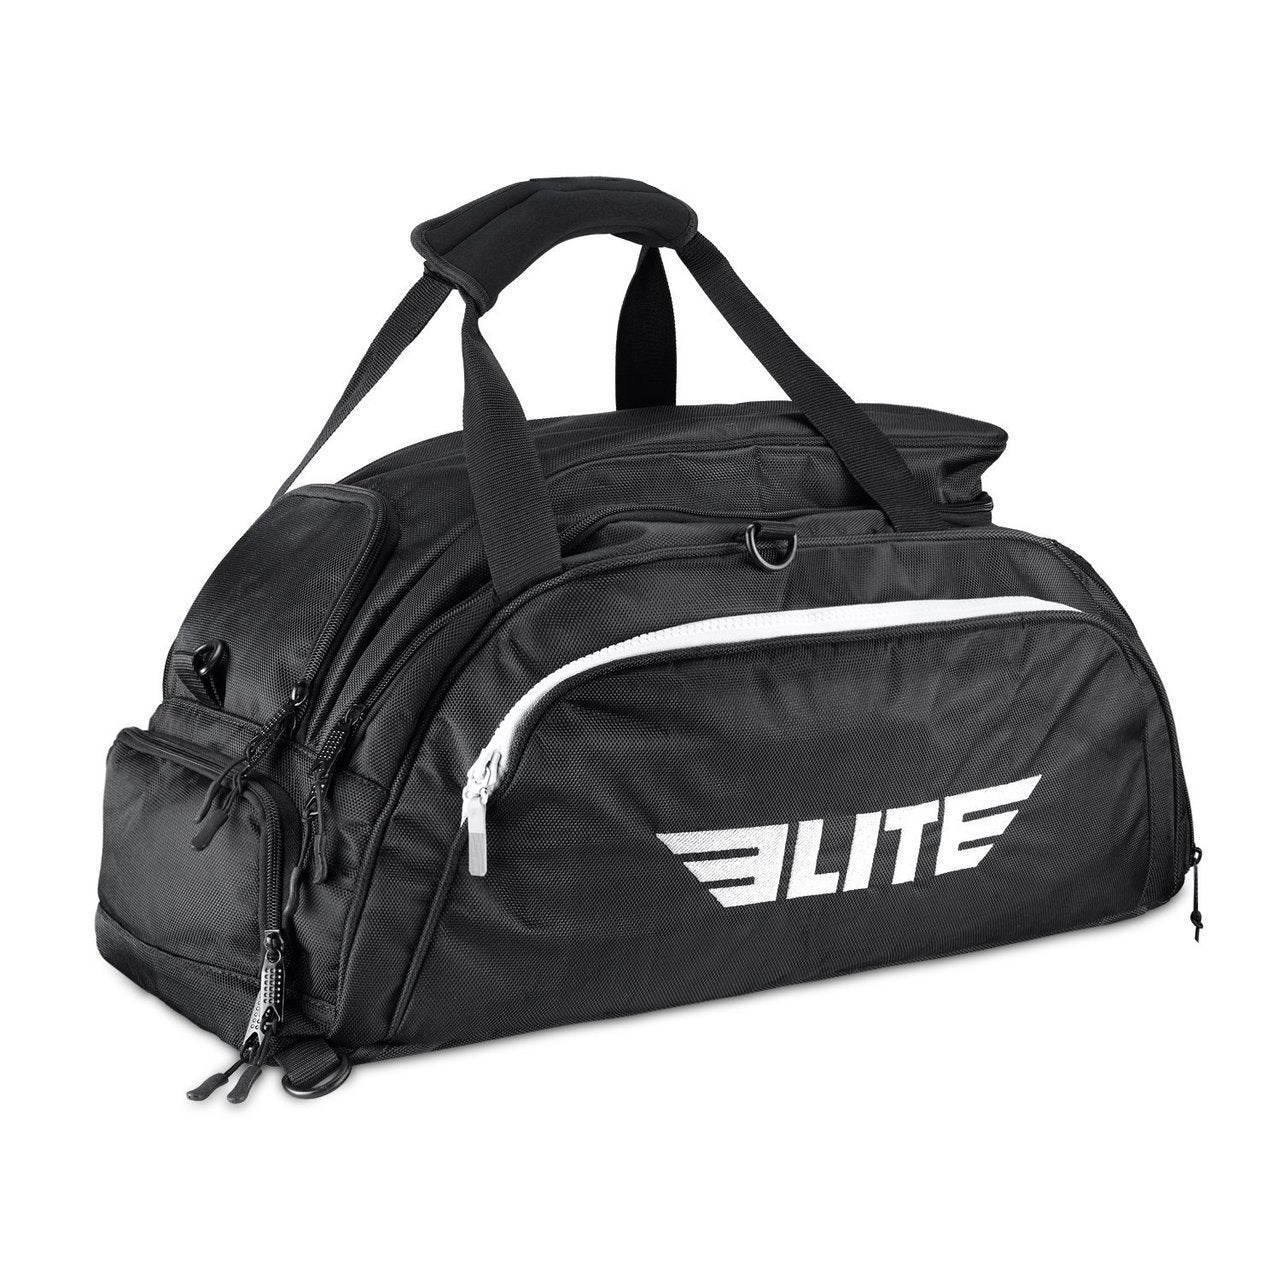 Load image into Gallery viewer, Elite Sports Warrior Series Black Medium Duffel Training Gear Gym Bag & Backpack